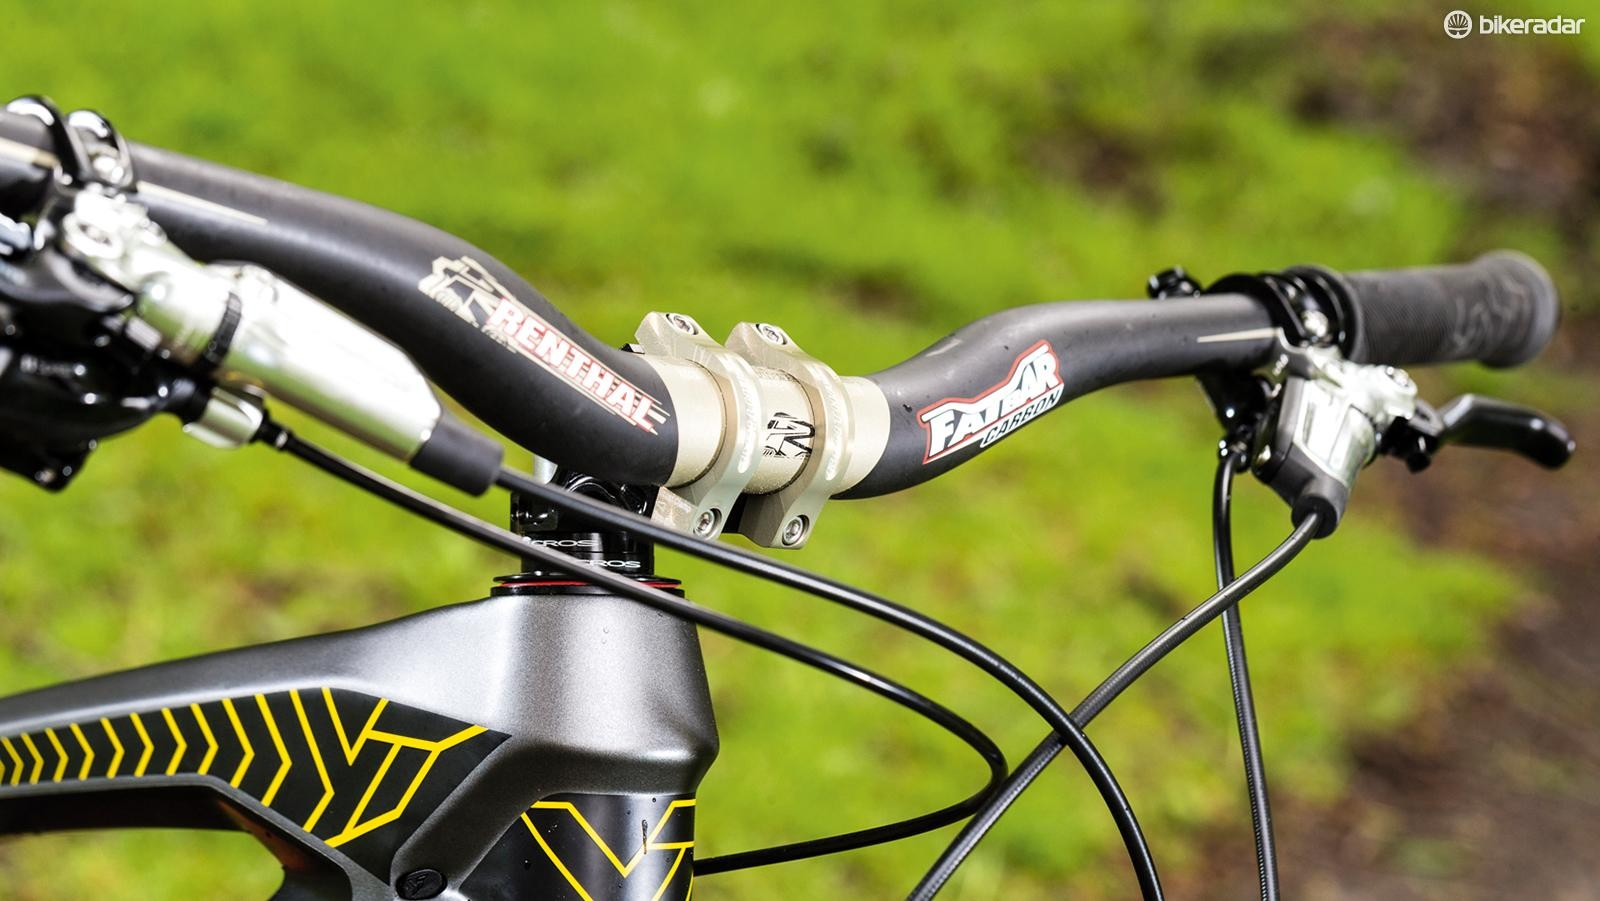 Super stiff 780mm wide Renthal Carbon bars are paired to a neat CNC stem